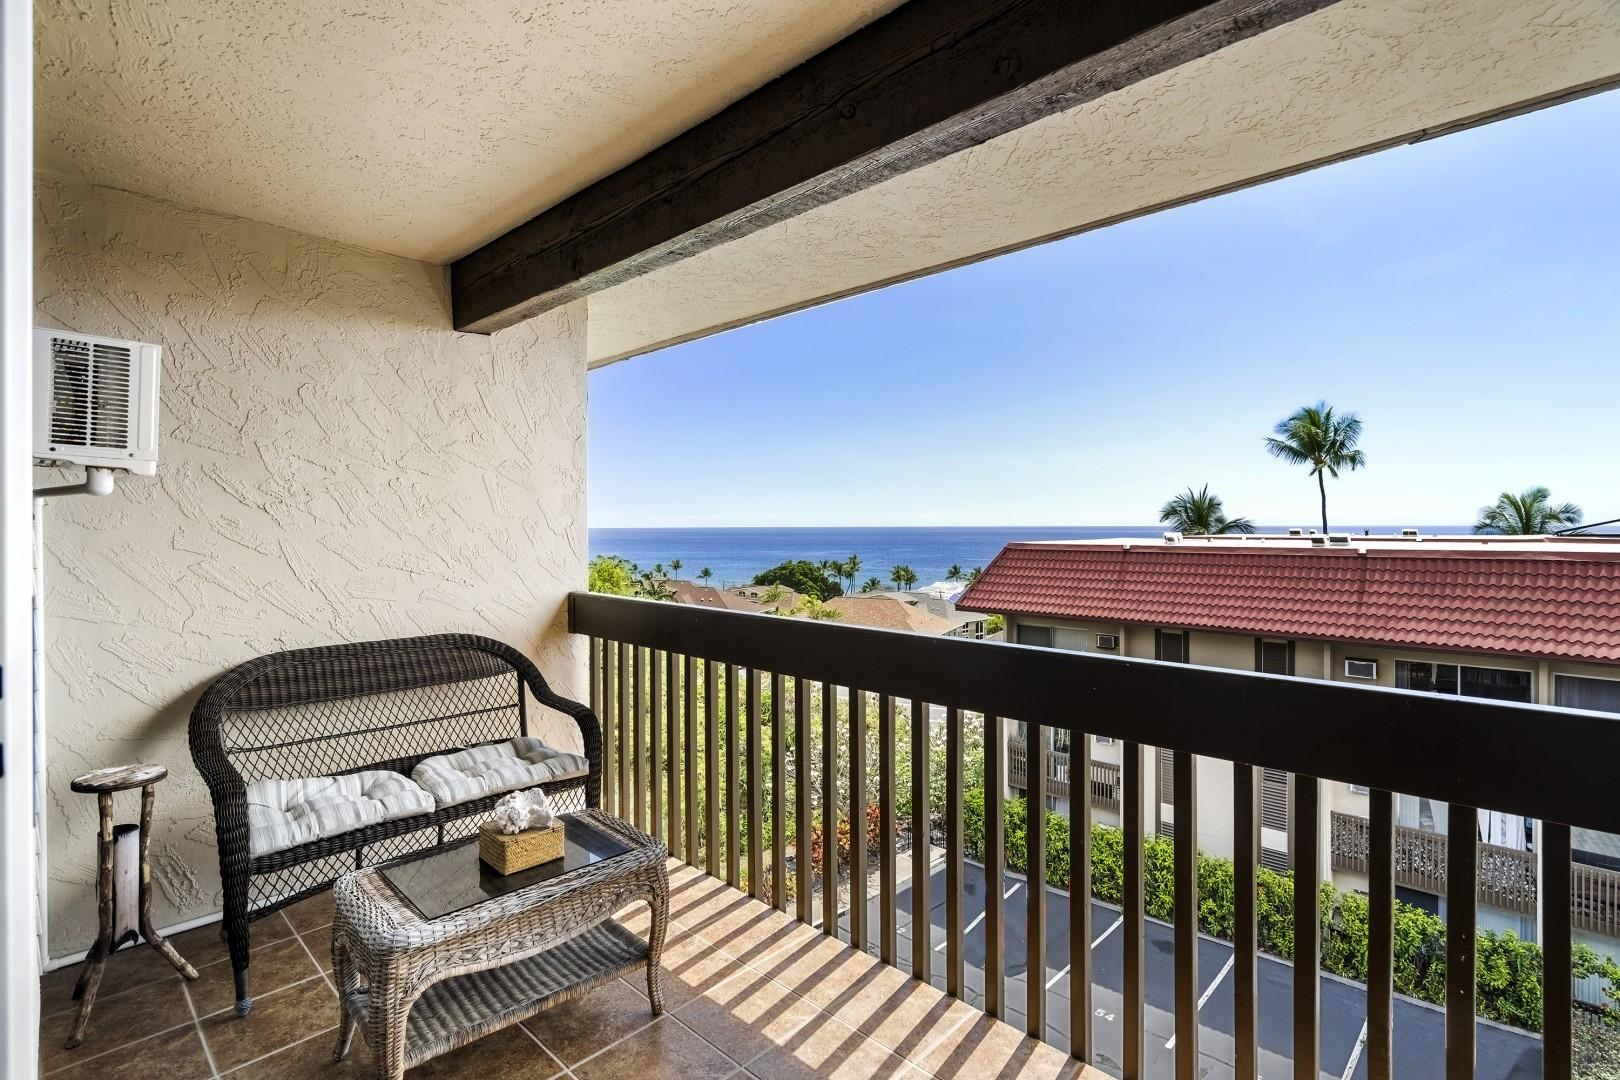 Master bedroom Lanai for your morning cup of Kona coffee!